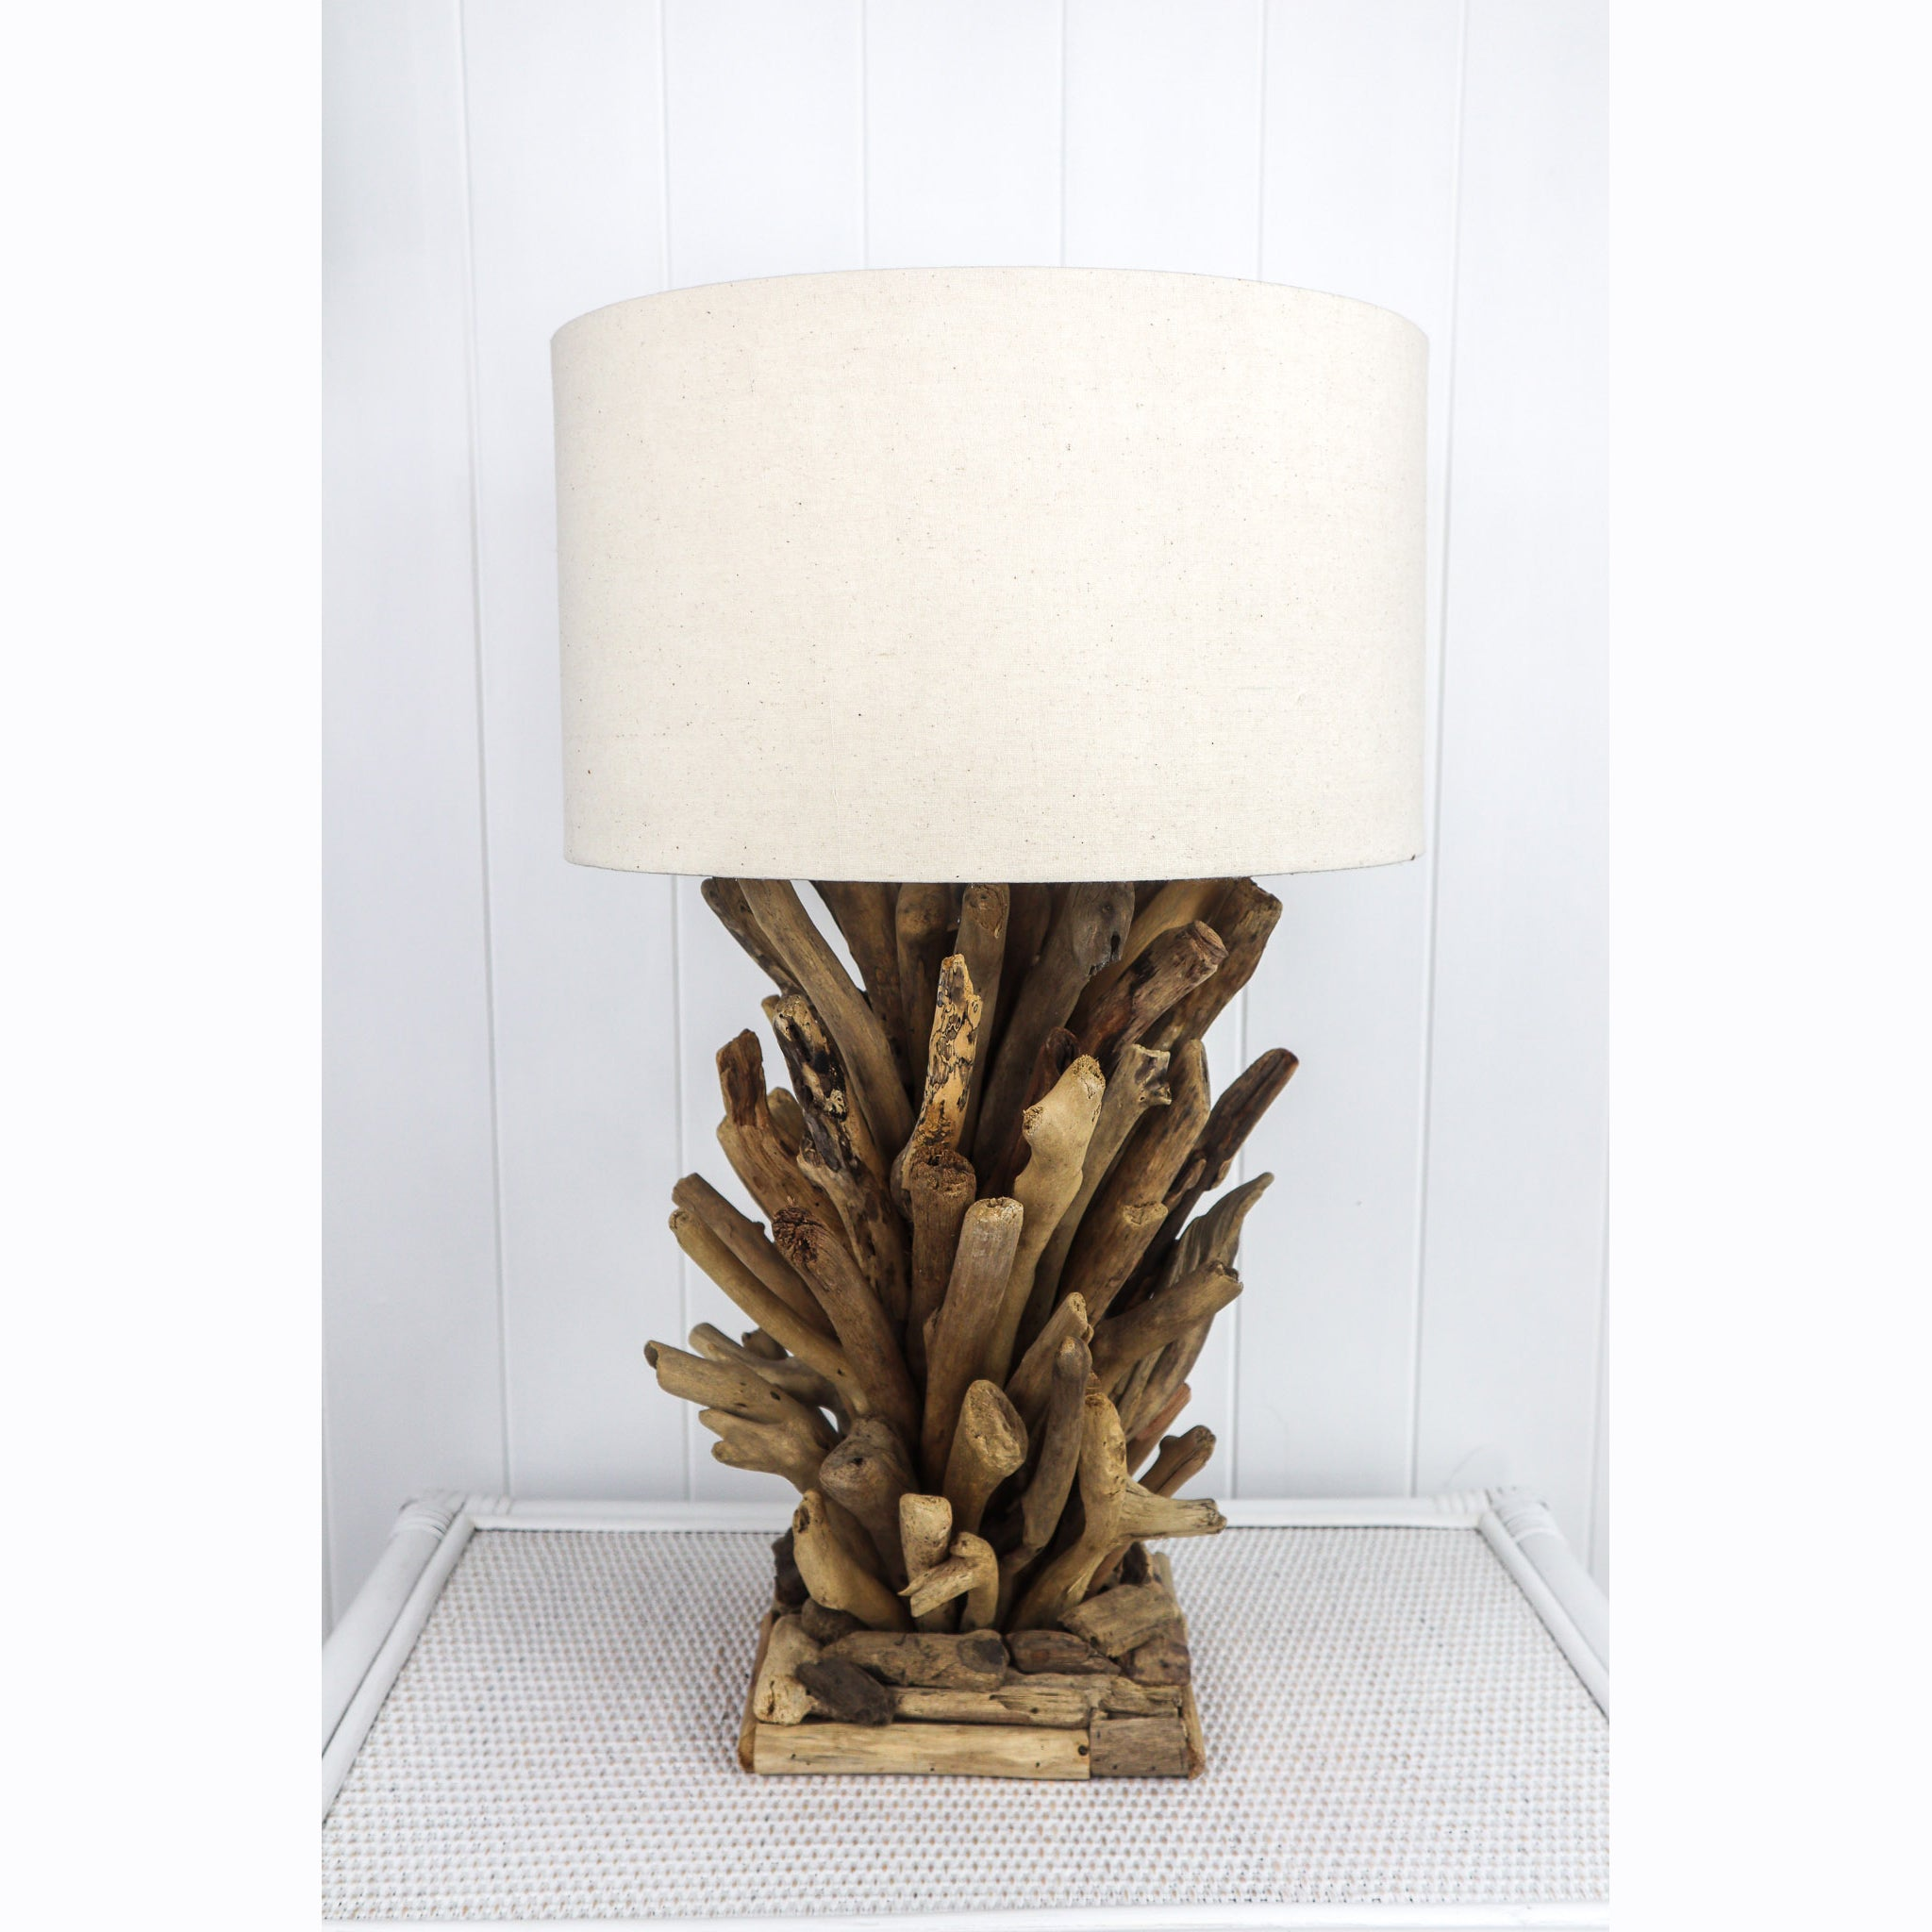 DRIFTWOOD COASTAL VIBES TABLE LAMP WITH LINEN SHADE